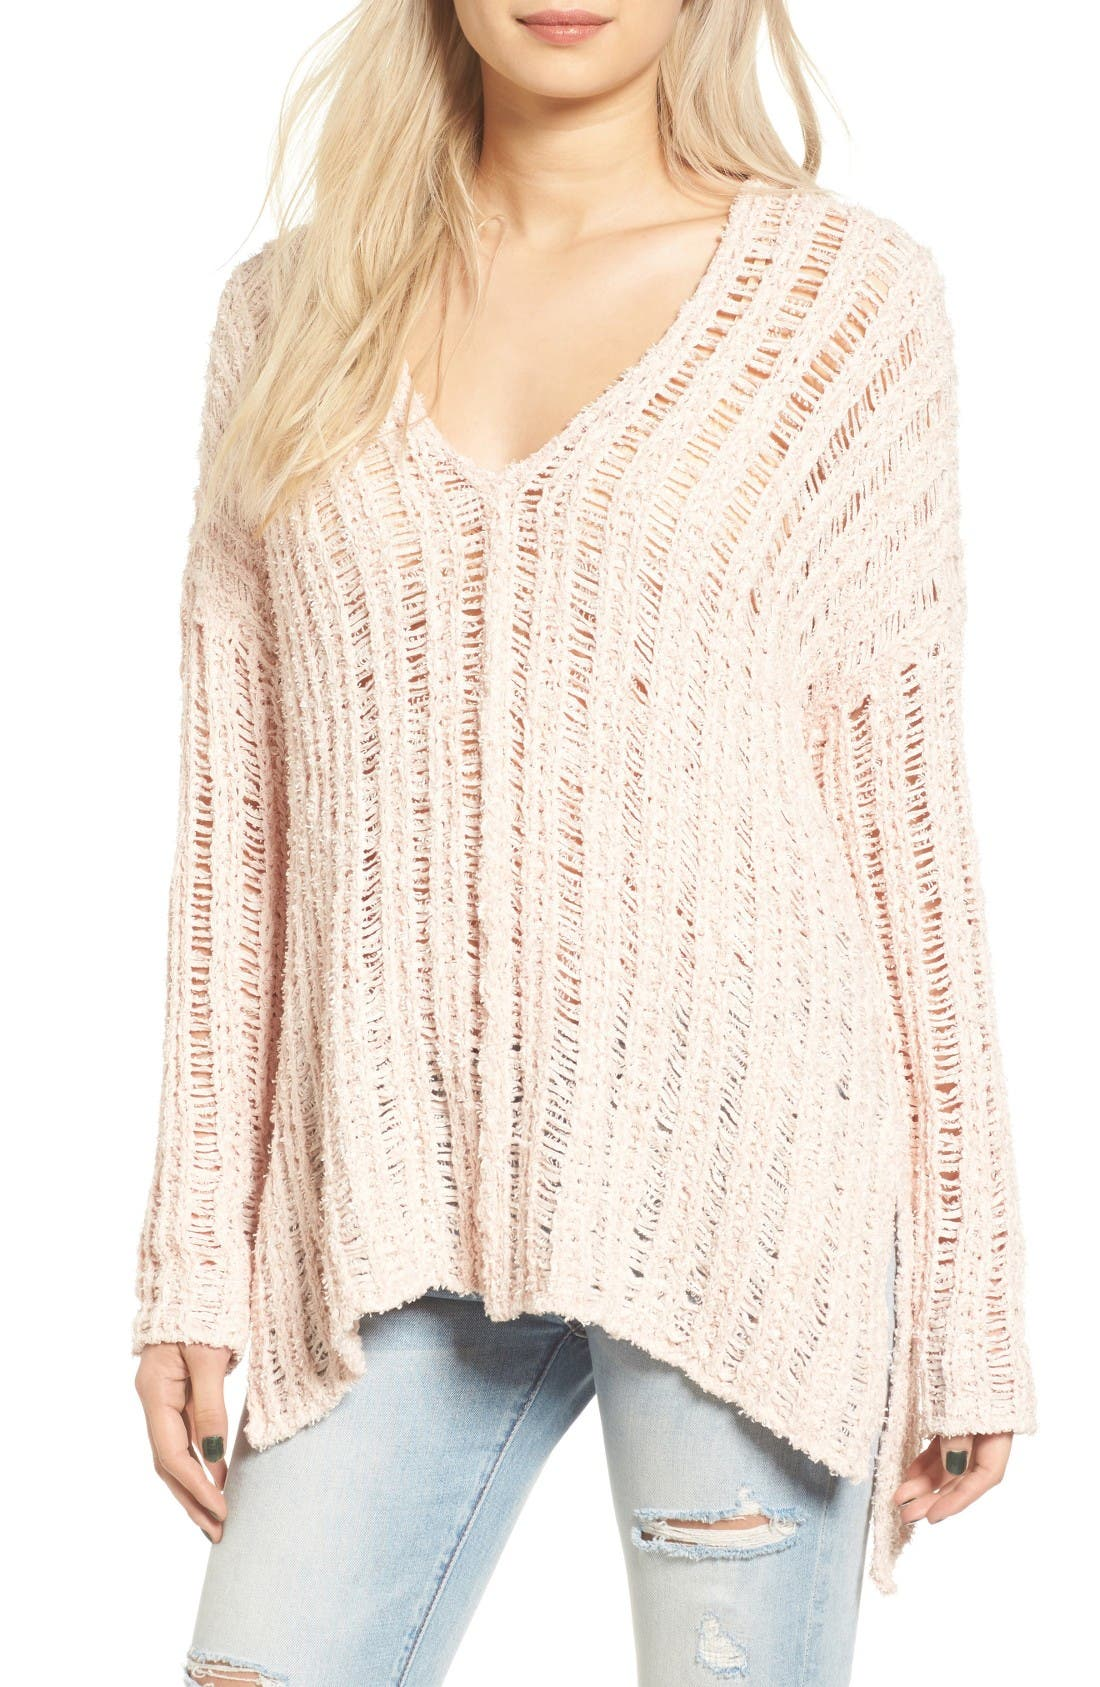 Alternate Image 1 Selected - ASTR the Label Open Knit Sweater